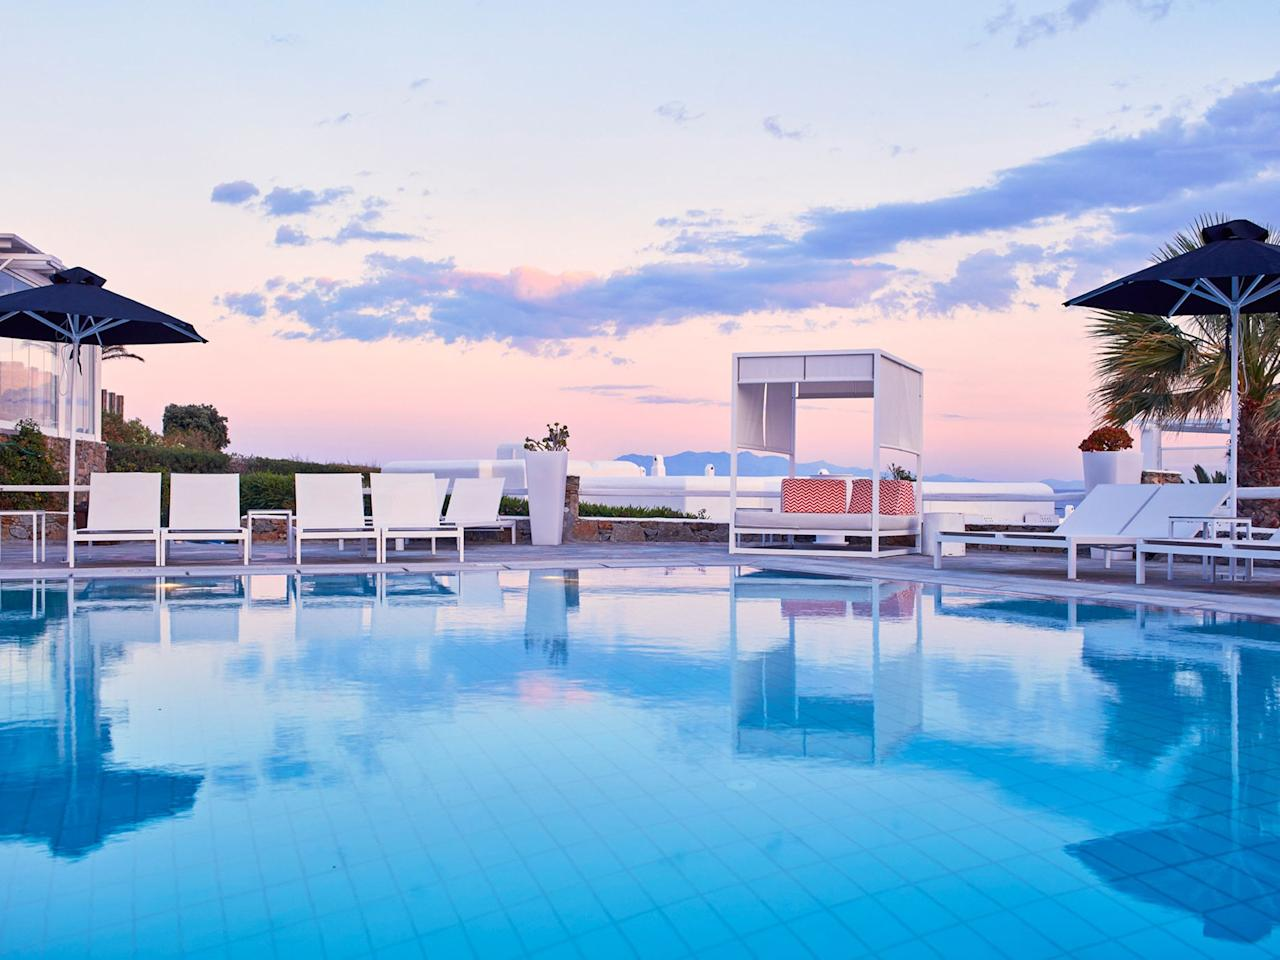 """Less than a quarter mile from the golden-sand Kalo Livadi beach, one of the longest on <a href=""""https://www.cntraveler.com/gallery/reasons-to-visit-the-greek-islands?mbid=synd_yahoo_rss"""">Mykonos</a>, the Archipelagos Hotel is about as idyll a retreat as you'll find, despite sitting on one of Greece's more popular spits of land. Take in a Cycladean sunset from your post on the pool deck, or, if you prefer, from the comfort of your room—designed like an amphitheater, many of the set-ups offer views of the region's azure waters. Come breakfast, stake out the buffet, a princely spread of fresh pastries, breads, meats, cheeses, and dried fruit to sustain you for the day ahead—whether that means a hike up the isle's rocky crags, or one parsing past issues of <em>The New Yorker</em> by the pool."""